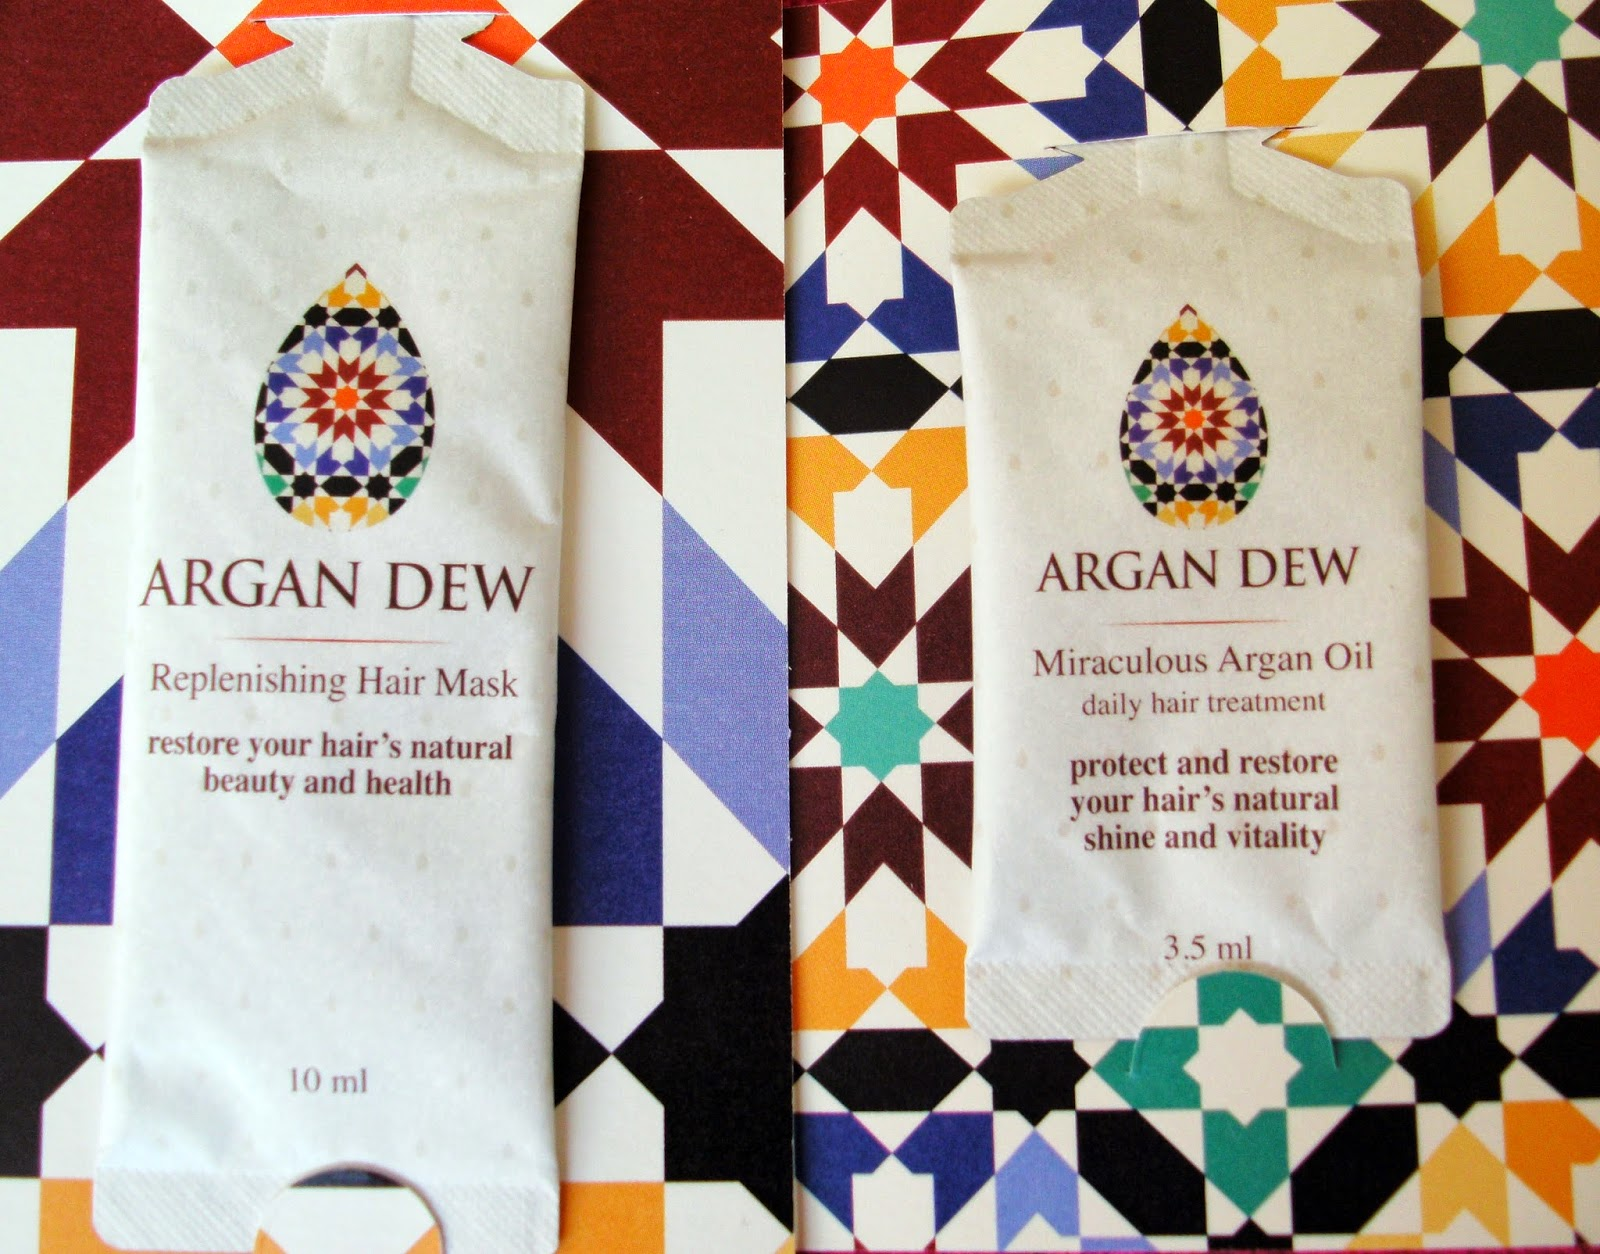 Argan Dew Replenishing Hair Mask and Miraculous Argan Oil Daily Hair Treatment Samples